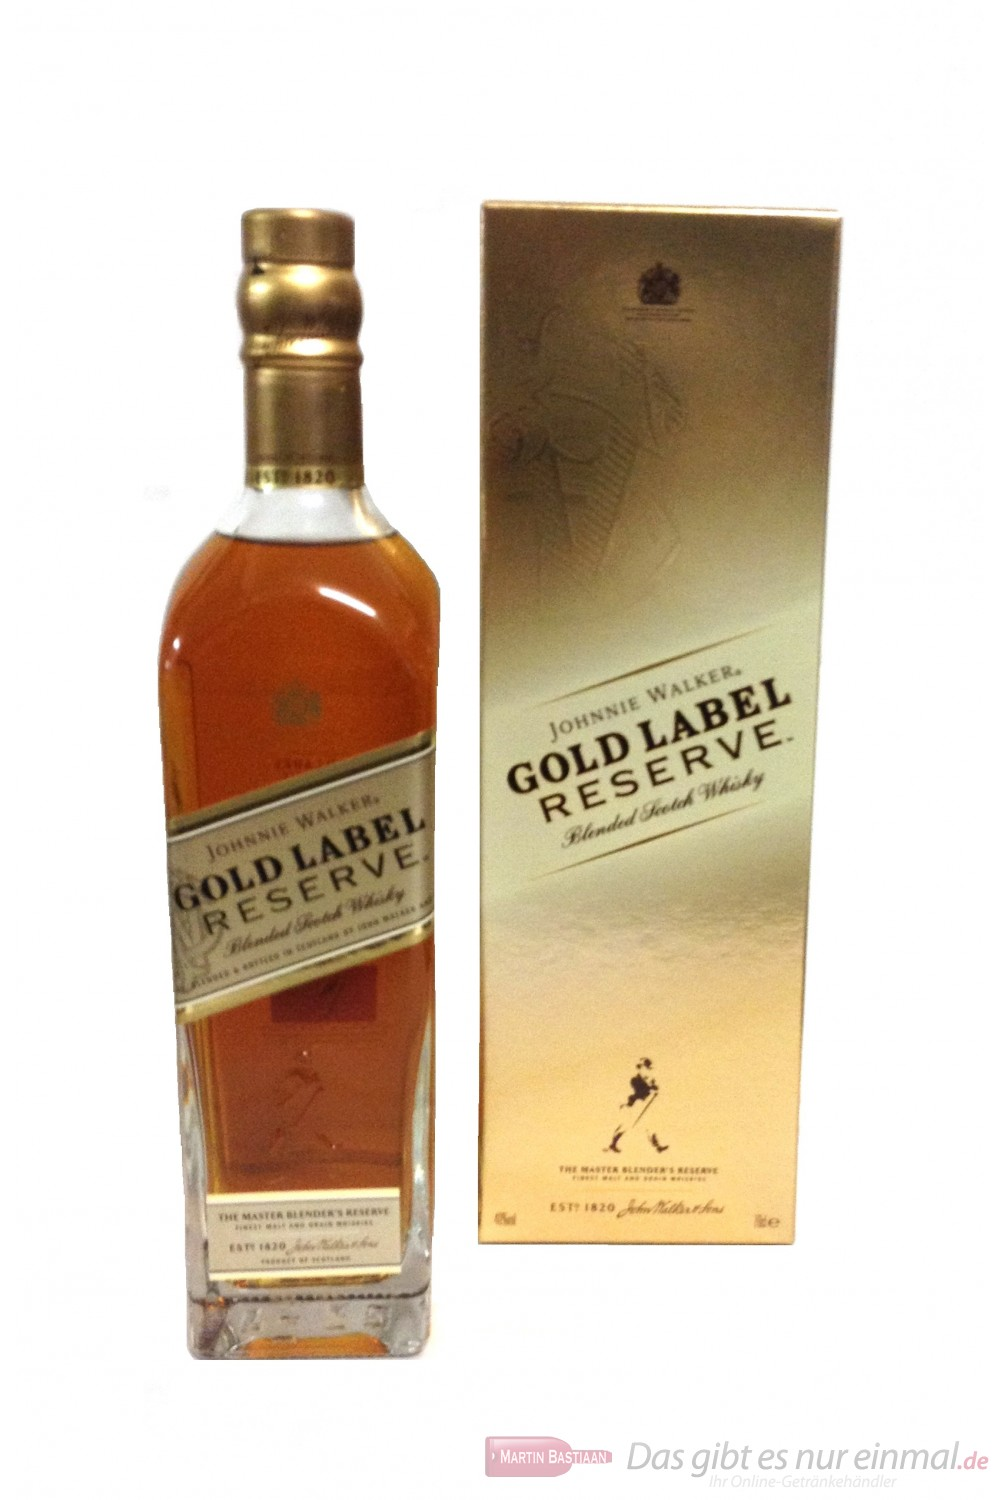 Johnnie Walker Gold Label Reserve Blend Scotch Whisky